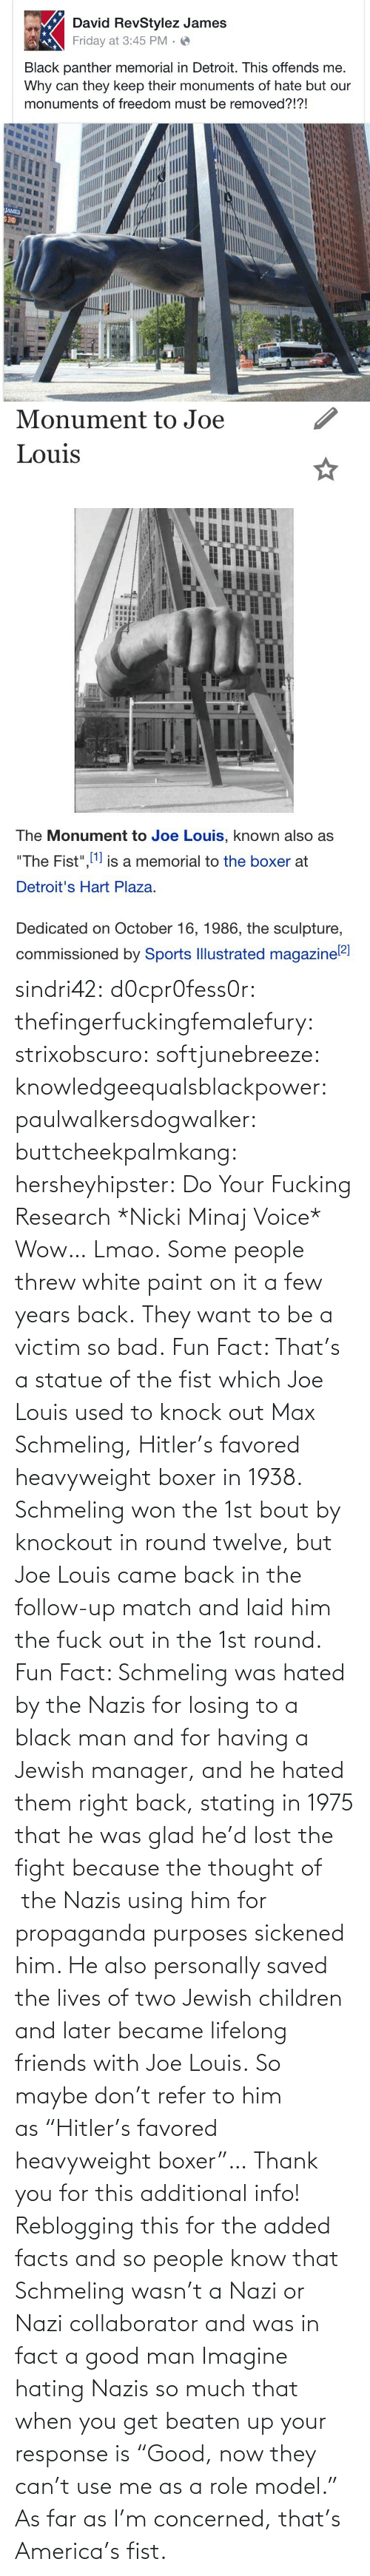 "For The: sindri42:  d0cpr0fess0r:  thefingerfuckingfemalefury:  strixobscuro:  softjunebreeze:  knowledgeequalsblackpower:  paulwalkersdogwalker:   buttcheekpalmkang:   hersheyhipster:  Do Your Fucking Research *Nicki Minaj Voice*    Wow… Lmao.   Some people threw white paint on it a few years back.   They want to be a victim so bad.  Fun Fact: That's a statue of the fist which Joe Louis used to knock out Max Schmeling, Hitler's favored heavyweight boxer in 1938. Schmeling won the 1st bout by knockout in round twelve, but Joe Louis came back in the follow-up match and laid him the fuck out in the 1st round.  Fun Fact: Schmeling was hated by the Nazis for losing to a black man and for having a Jewish manager, and he hated them right back, stating in 1975 that he was glad he'd lost the fight because the thought of  the Nazis using him for propaganda purposes sickened him. He also personally saved the lives of two Jewish children and later became lifelong friends with Joe Louis. So maybe don't refer to him as ""Hitler's favored heavyweight boxer""…  Thank you for this additional info! Reblogging this for the added facts and so people know that Schmeling wasn't a Nazi or Nazi collaborator and was in fact a good man   Imagine hating Nazis so much that when you get beaten up your response is ""Good, now they can't use me as a role model.""  As far as I'm concerned, that's America's fist."